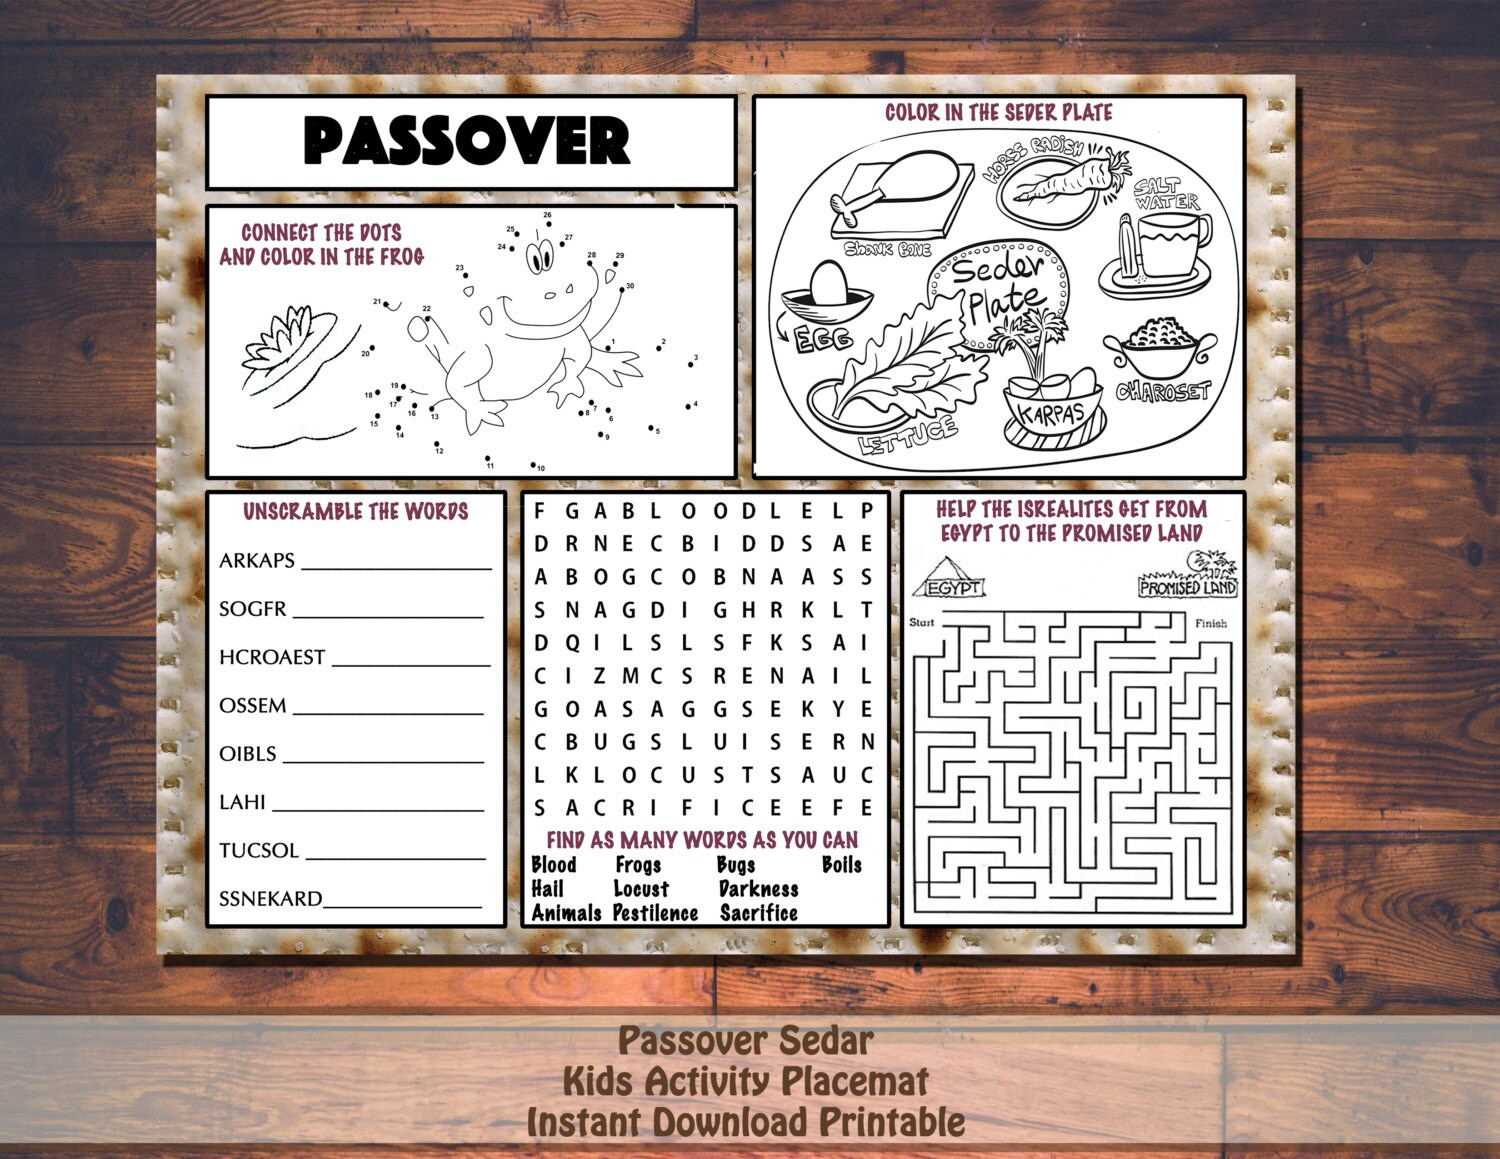 Tactueux image for children's passover haggadah printable